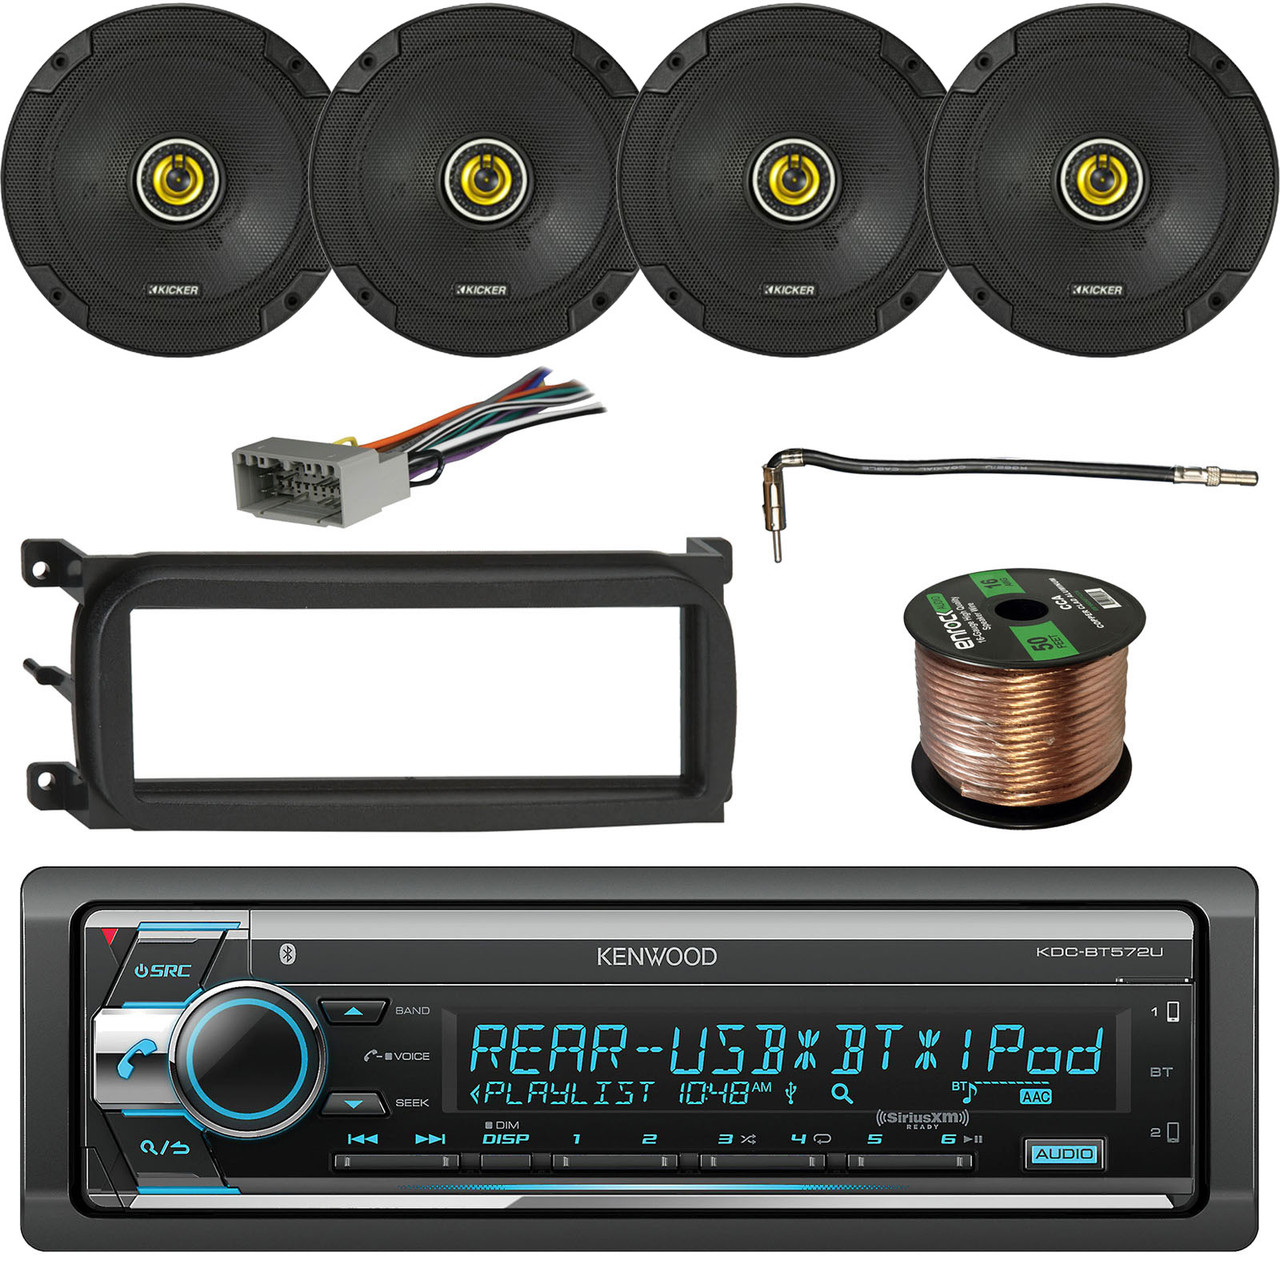 kenwood stereo receiver, bluetooth w/ kicker 600w speakers(2-pairs), enrock  single-din dash kit for chry/dodge/jeep, metra chrysler antenna adapter  cable,